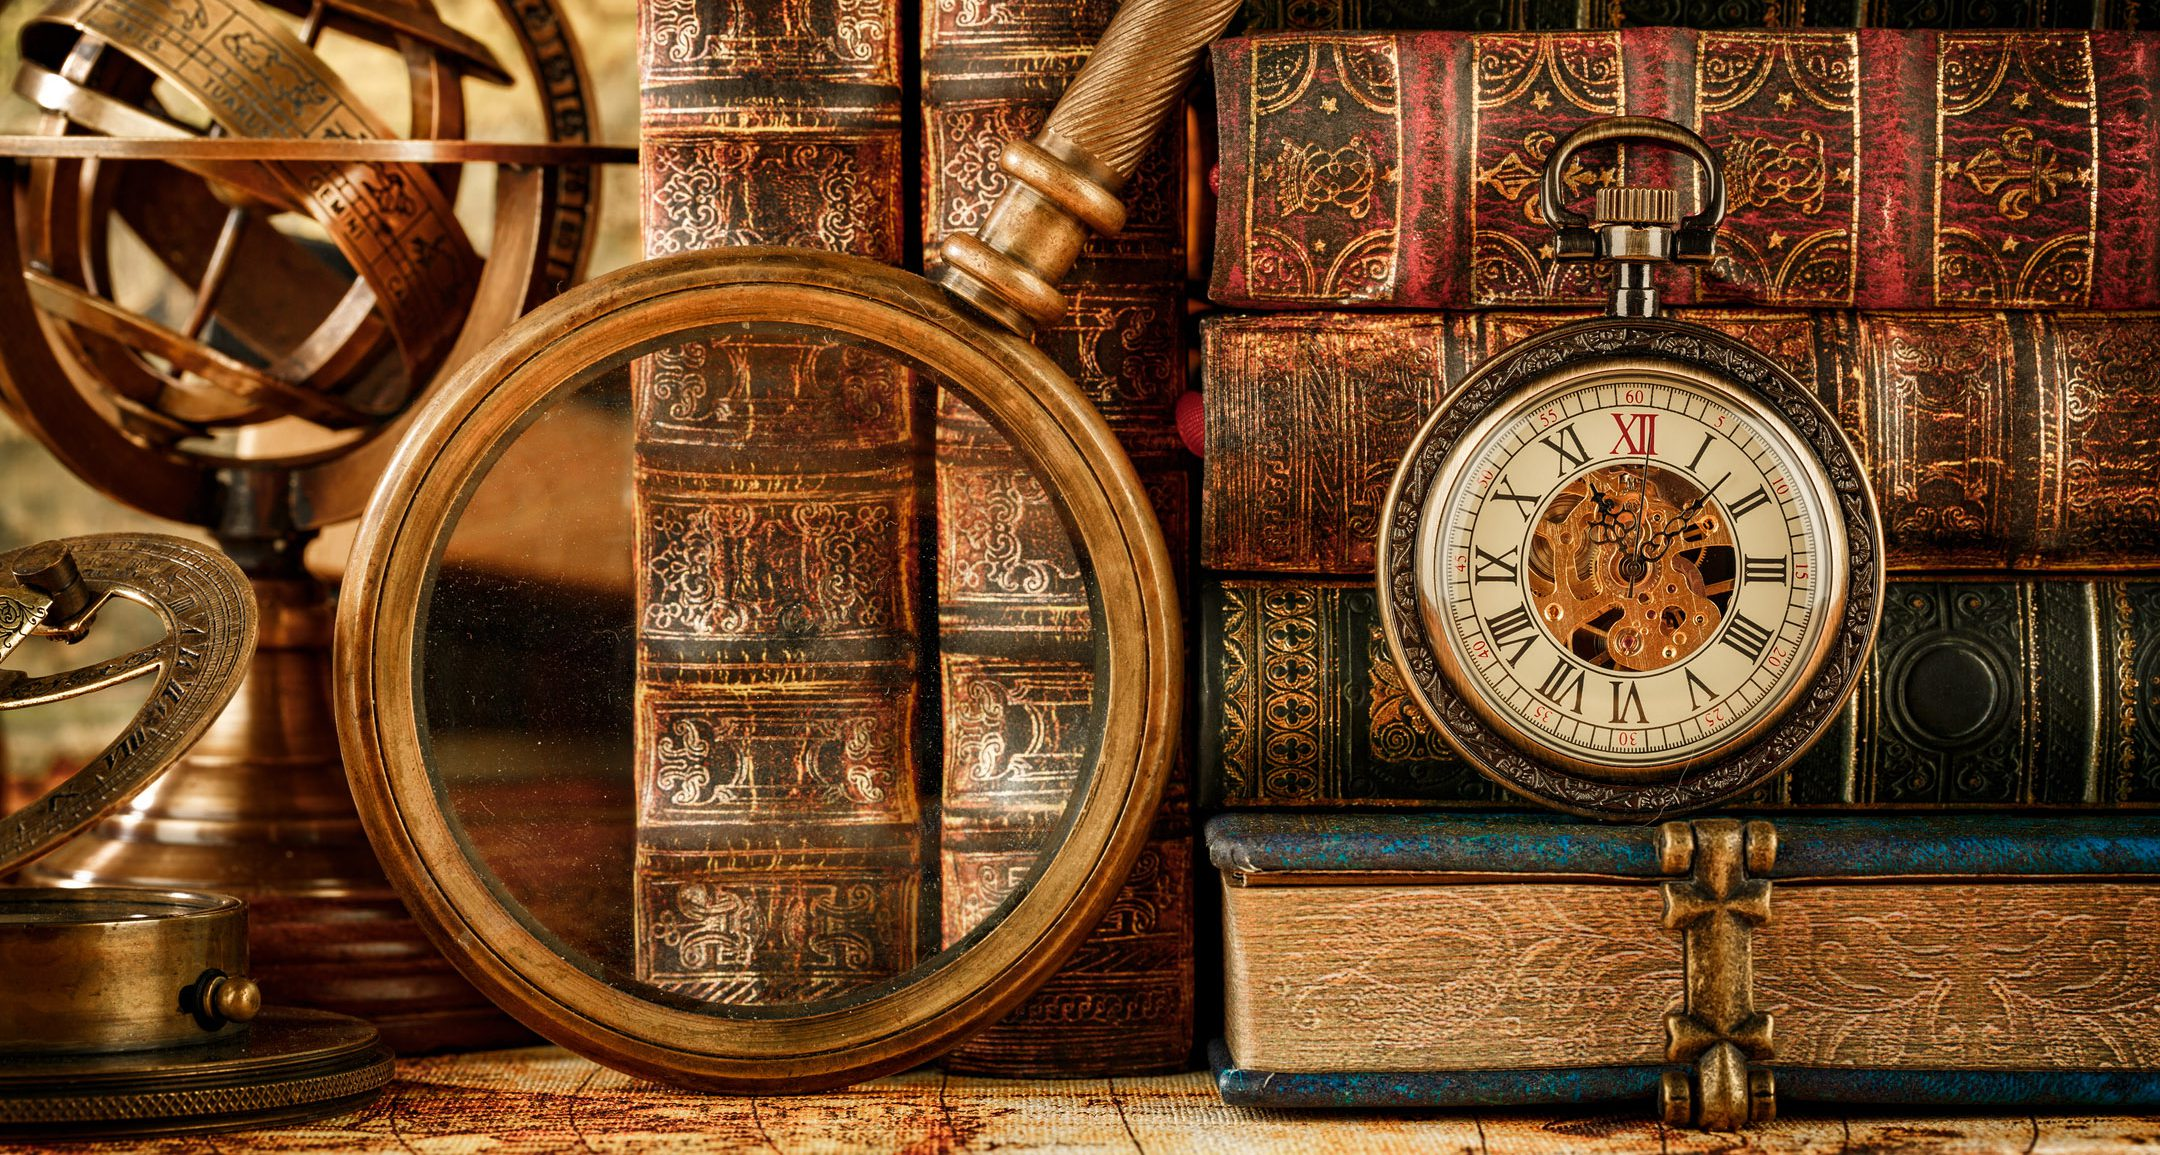 Magnifying glass, pocket watch and old books